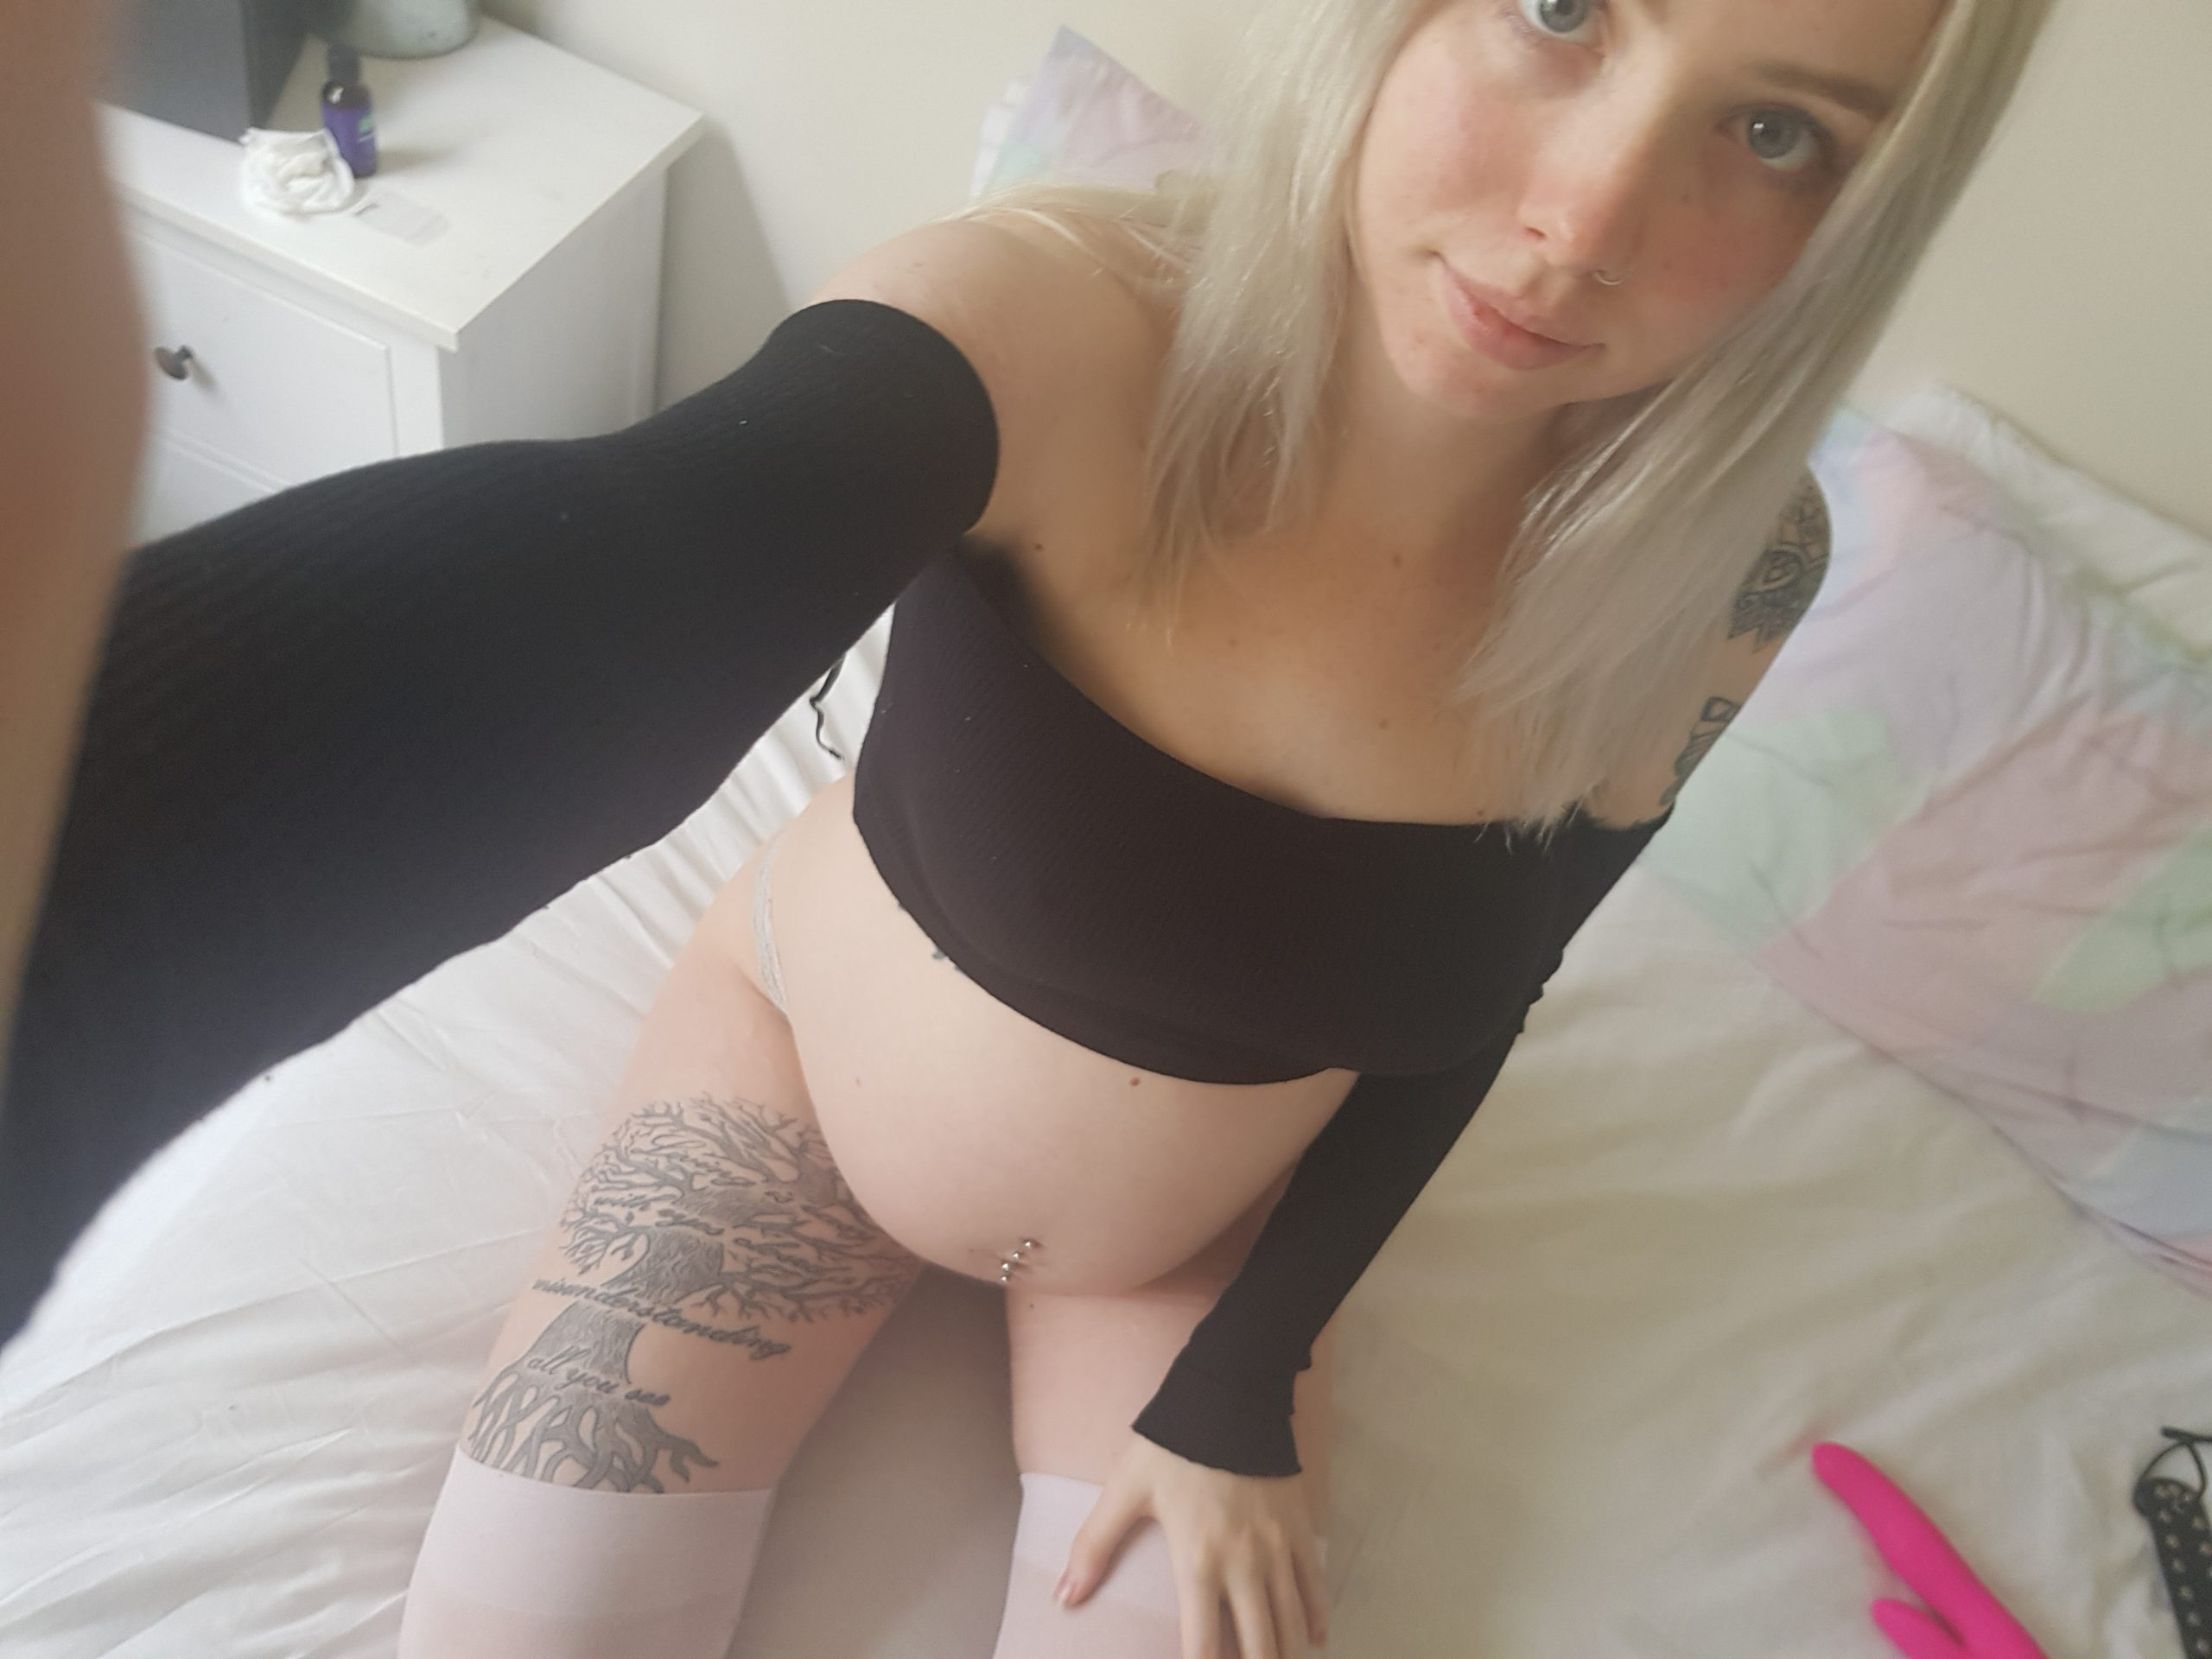 Kittyf Selfie 1 Ersties.com Intimate Moments Angel Like And Penchant For Pain (12)